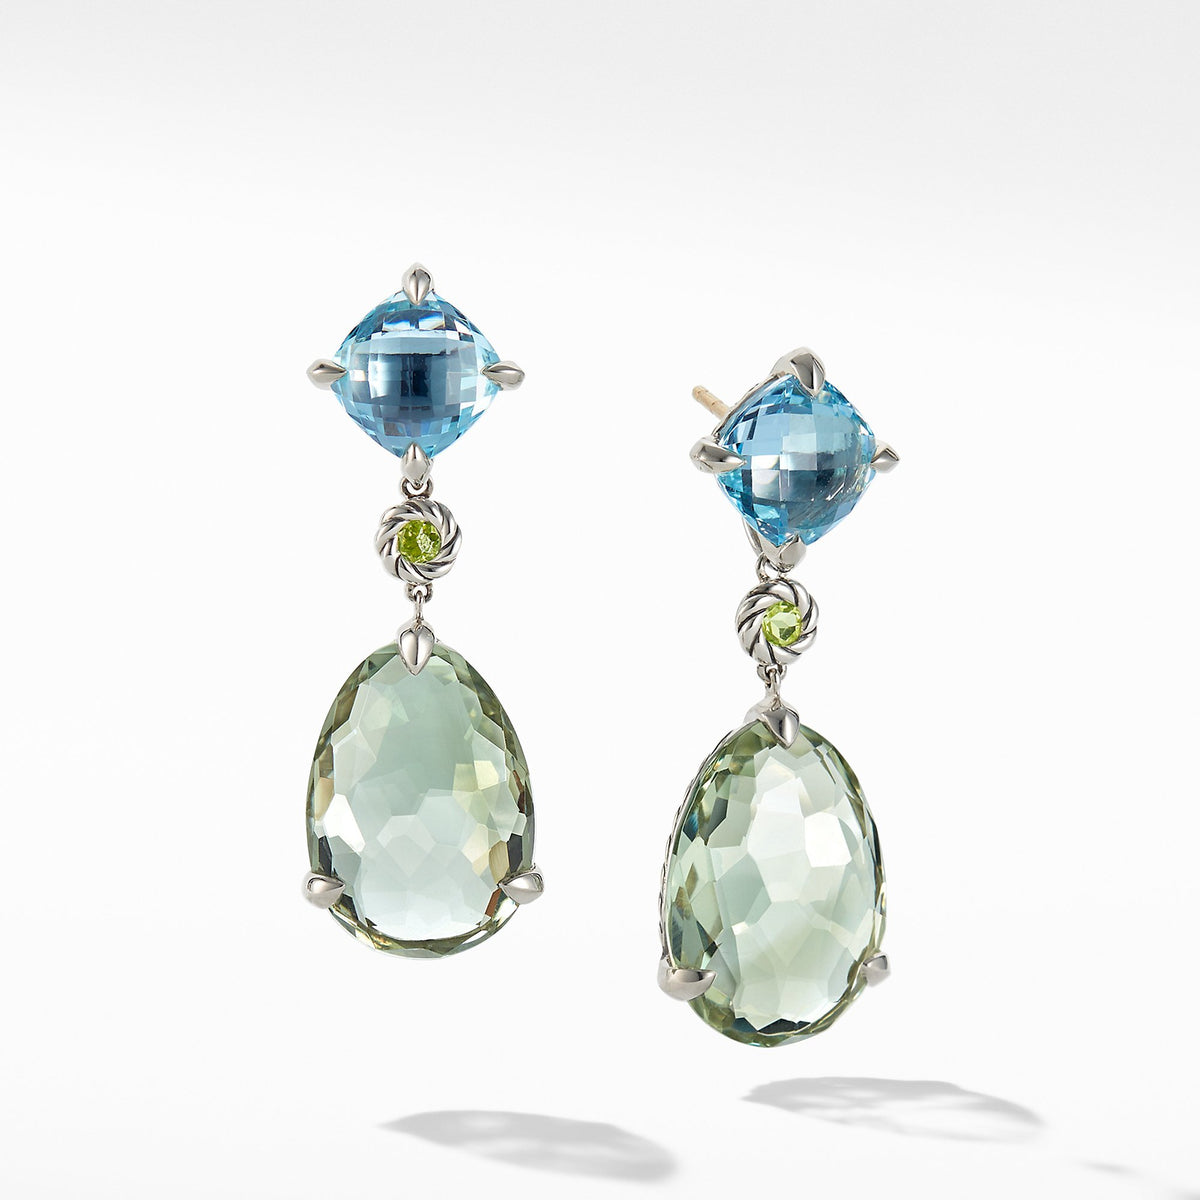 Chatelaine Drop Earrings with Prasiolite, Blue Topaz and Peridot